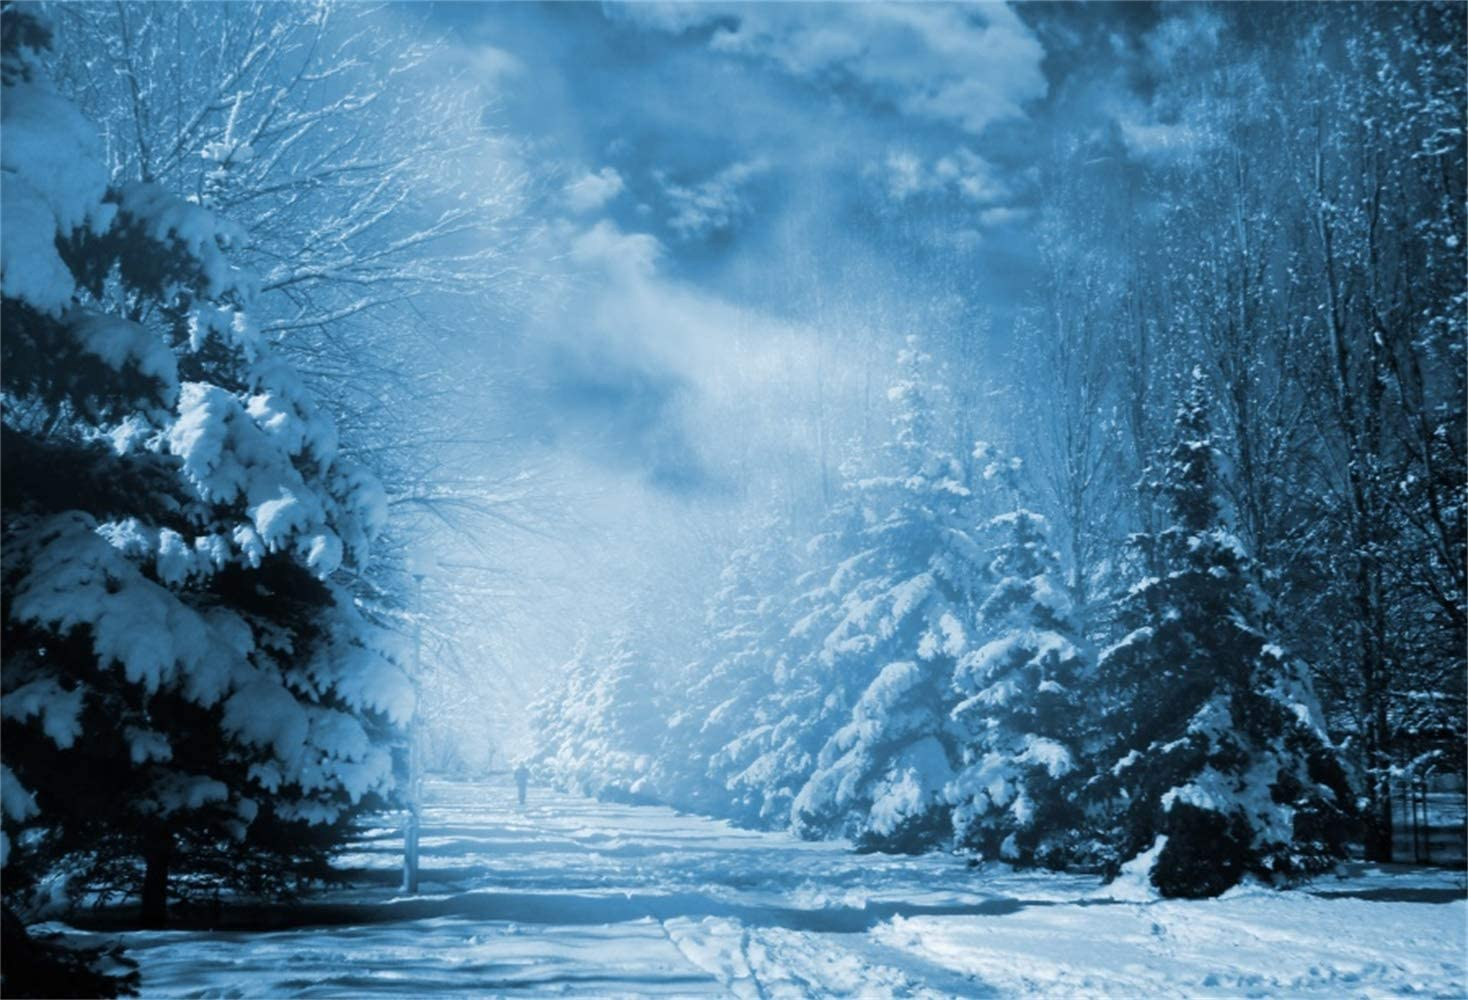 Laeacco 7x5ft Vinyl Beautiful Snowscape Photography Background Snowy Trees Road Cloudy Sky Winter Scenic Backdrops New Year Christmas Winter Party Decoration Child Adults Photo Studio Props